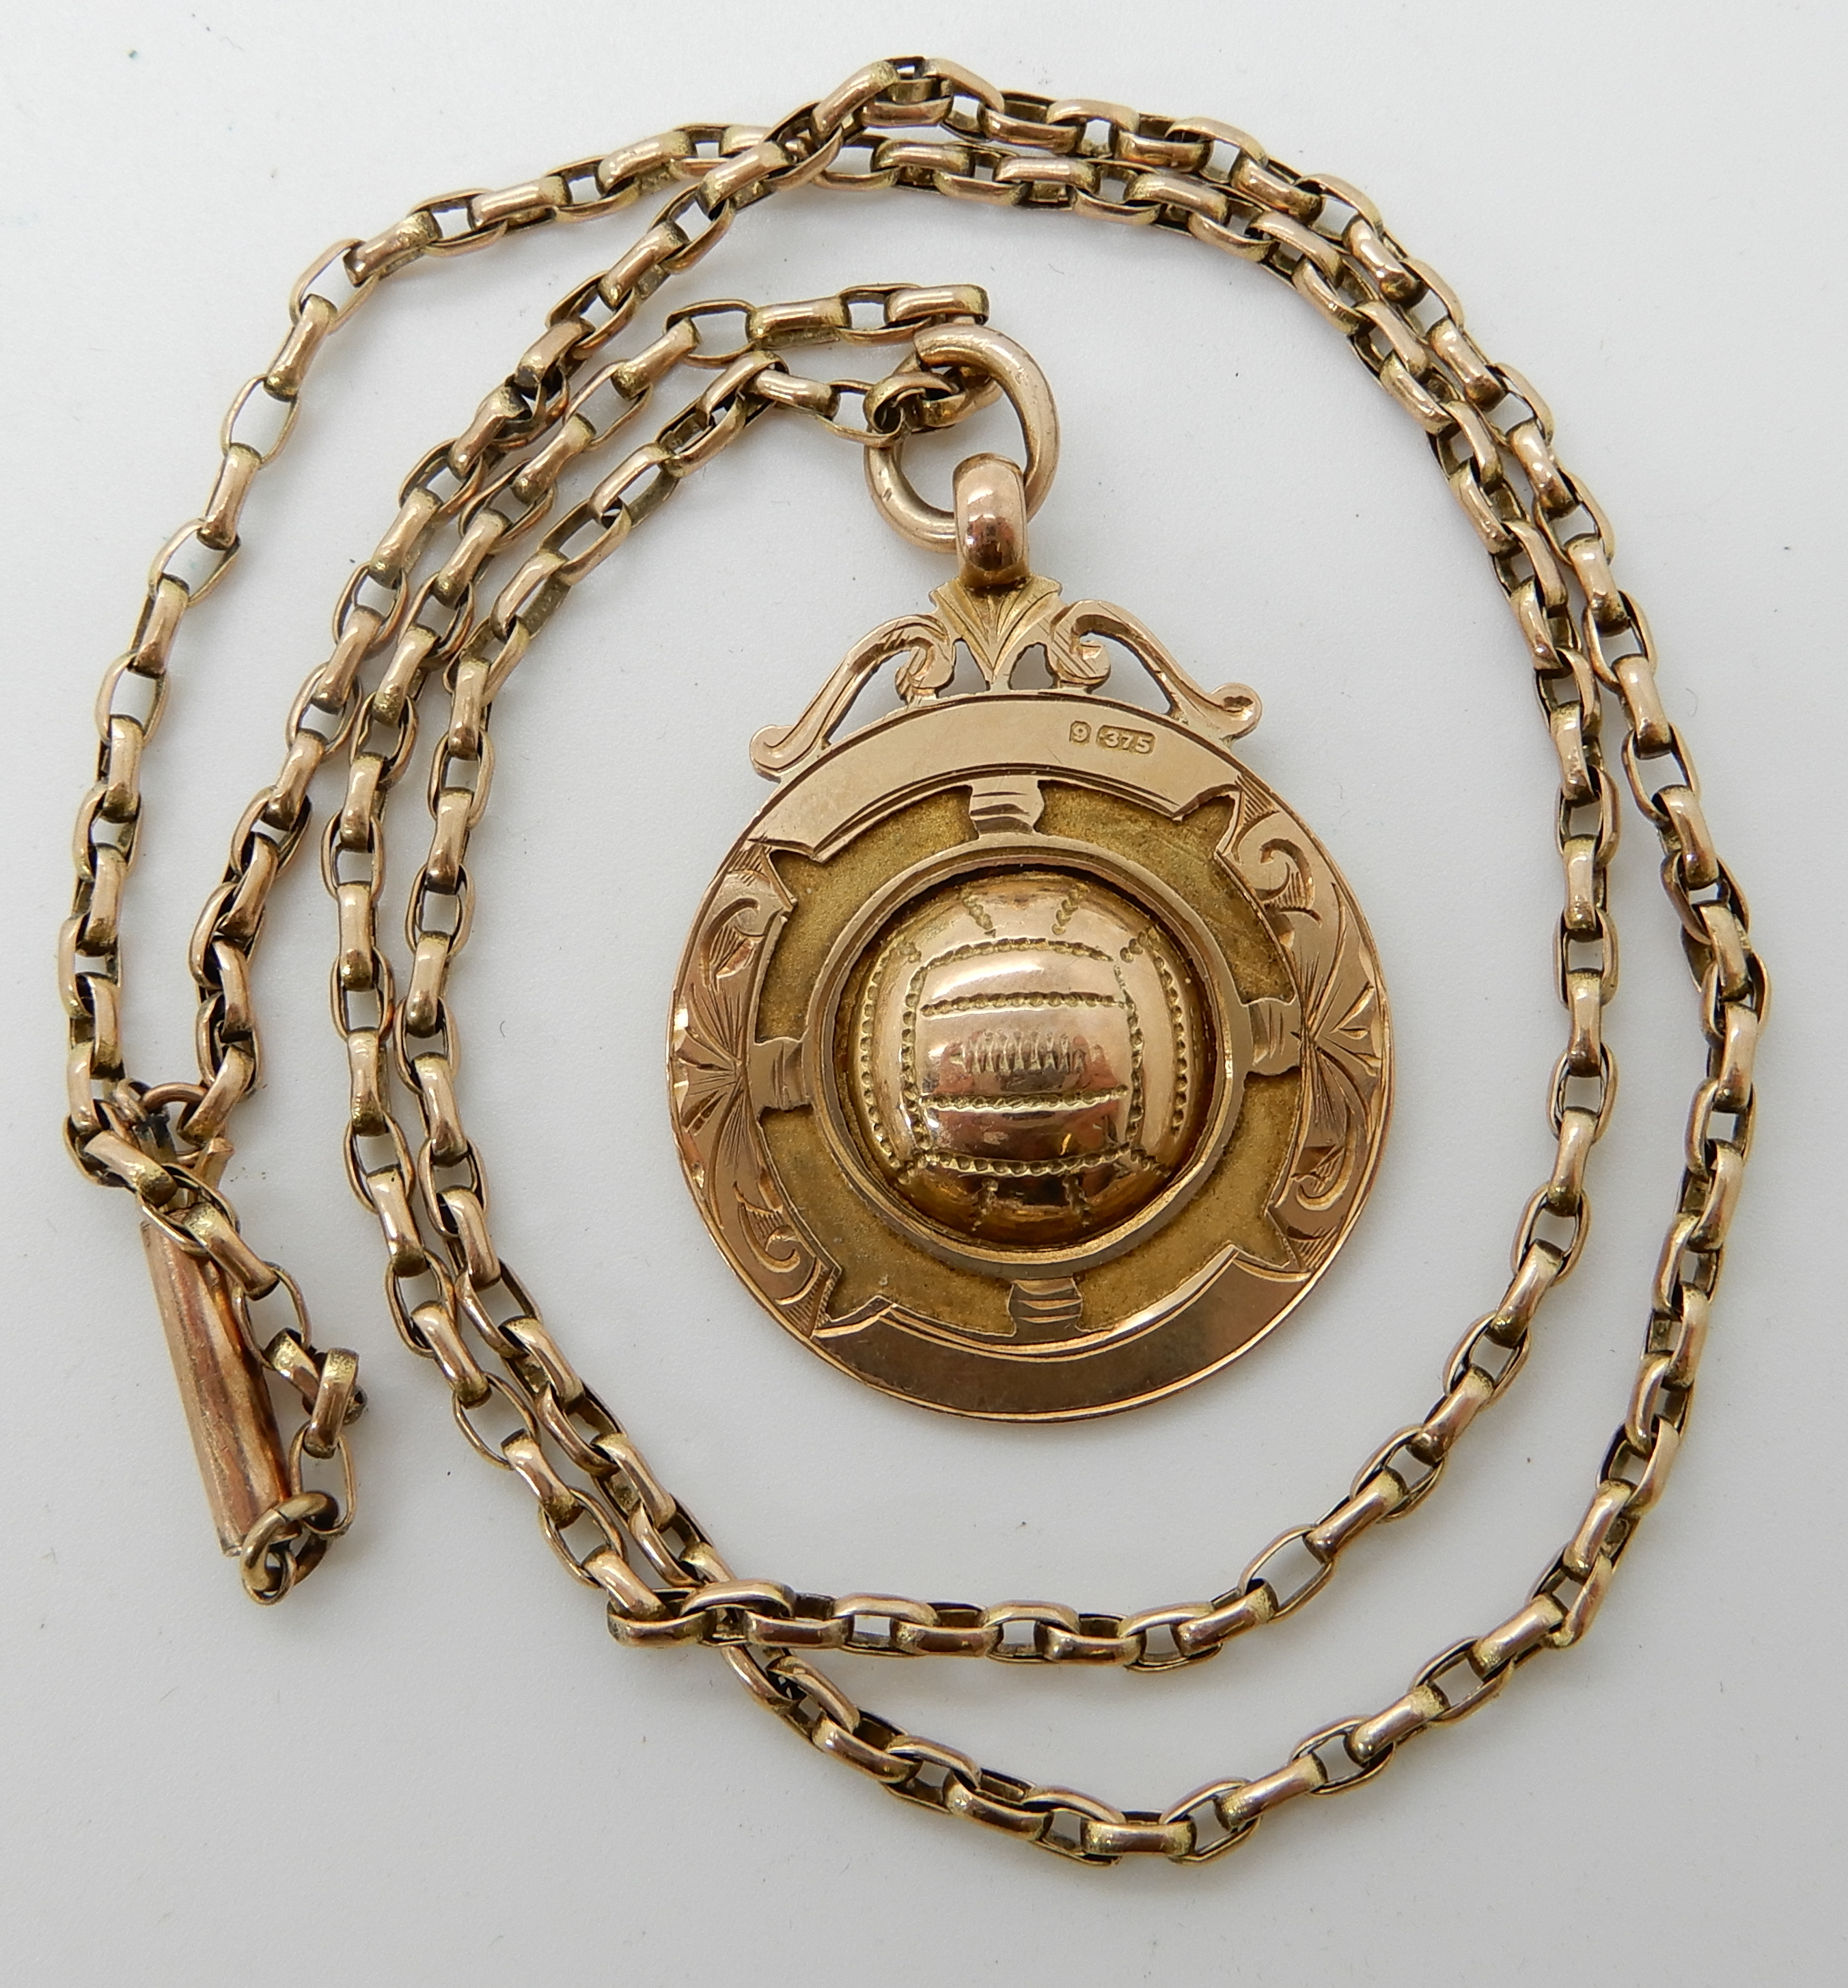 Lot 60 - A 9ct gold football medallion with a 9ct vintage chain, length of chain 48cm, weight 11gms Condition